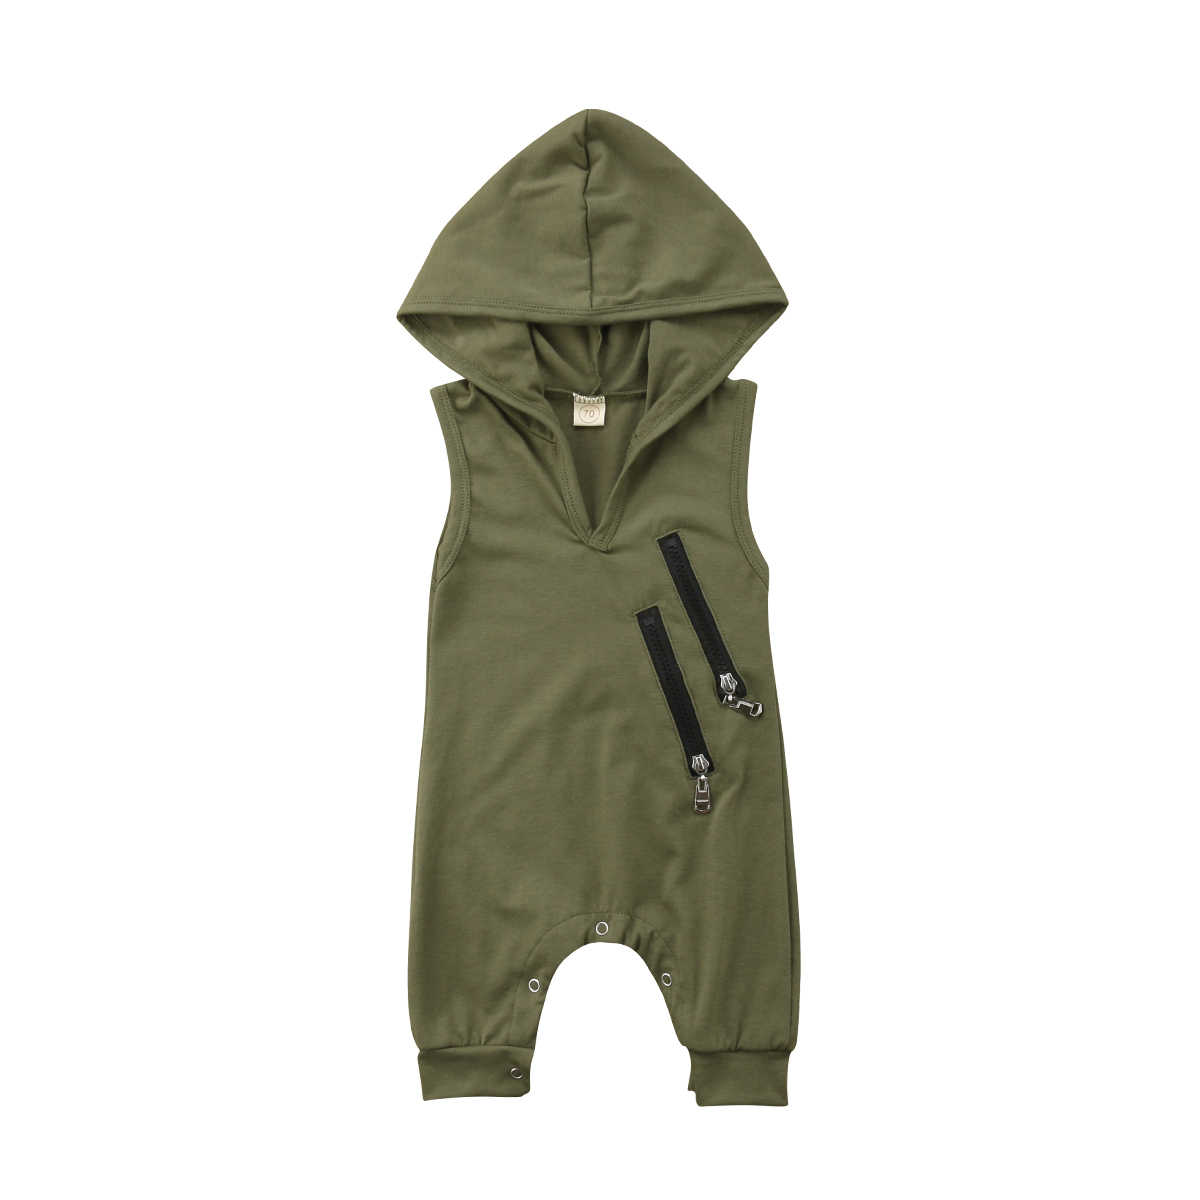 2ea5b619958 Newborn Toddler Baby Boys Girls Army Green Color Sleeveless Hooded Romper  Jumpsuit Outfit Fashion Style